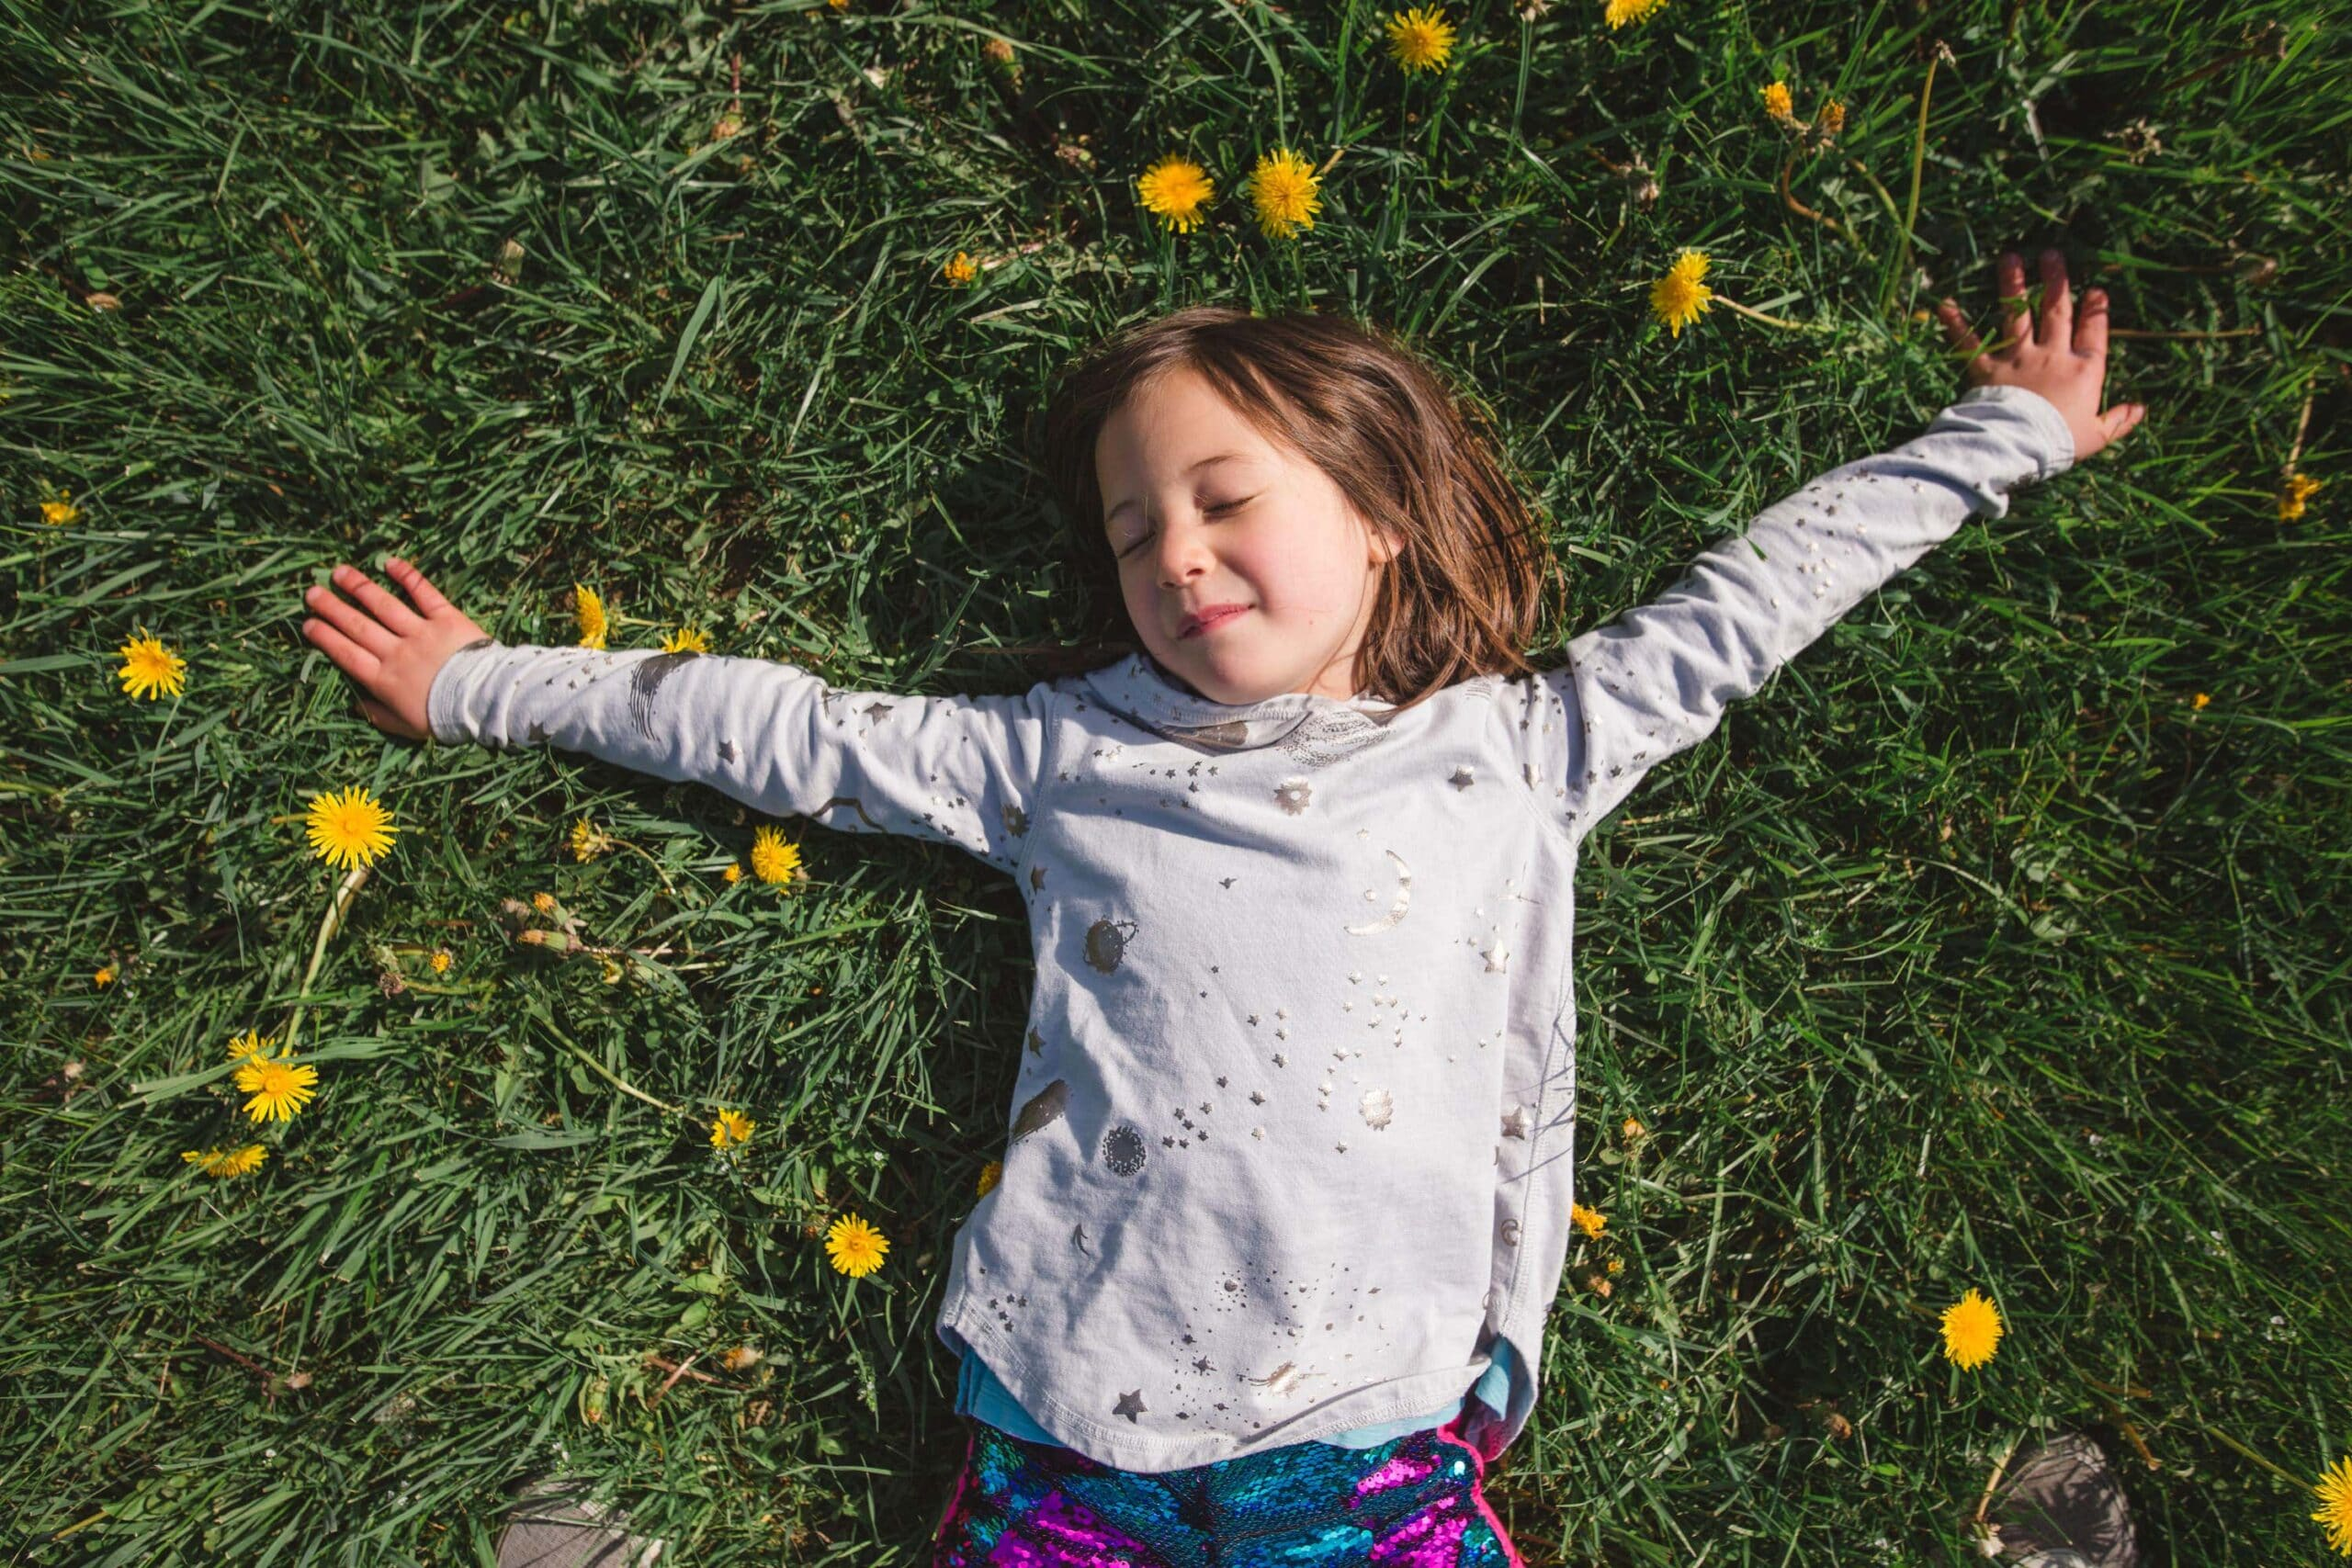 Ways To Boost Your Child's wellbeing